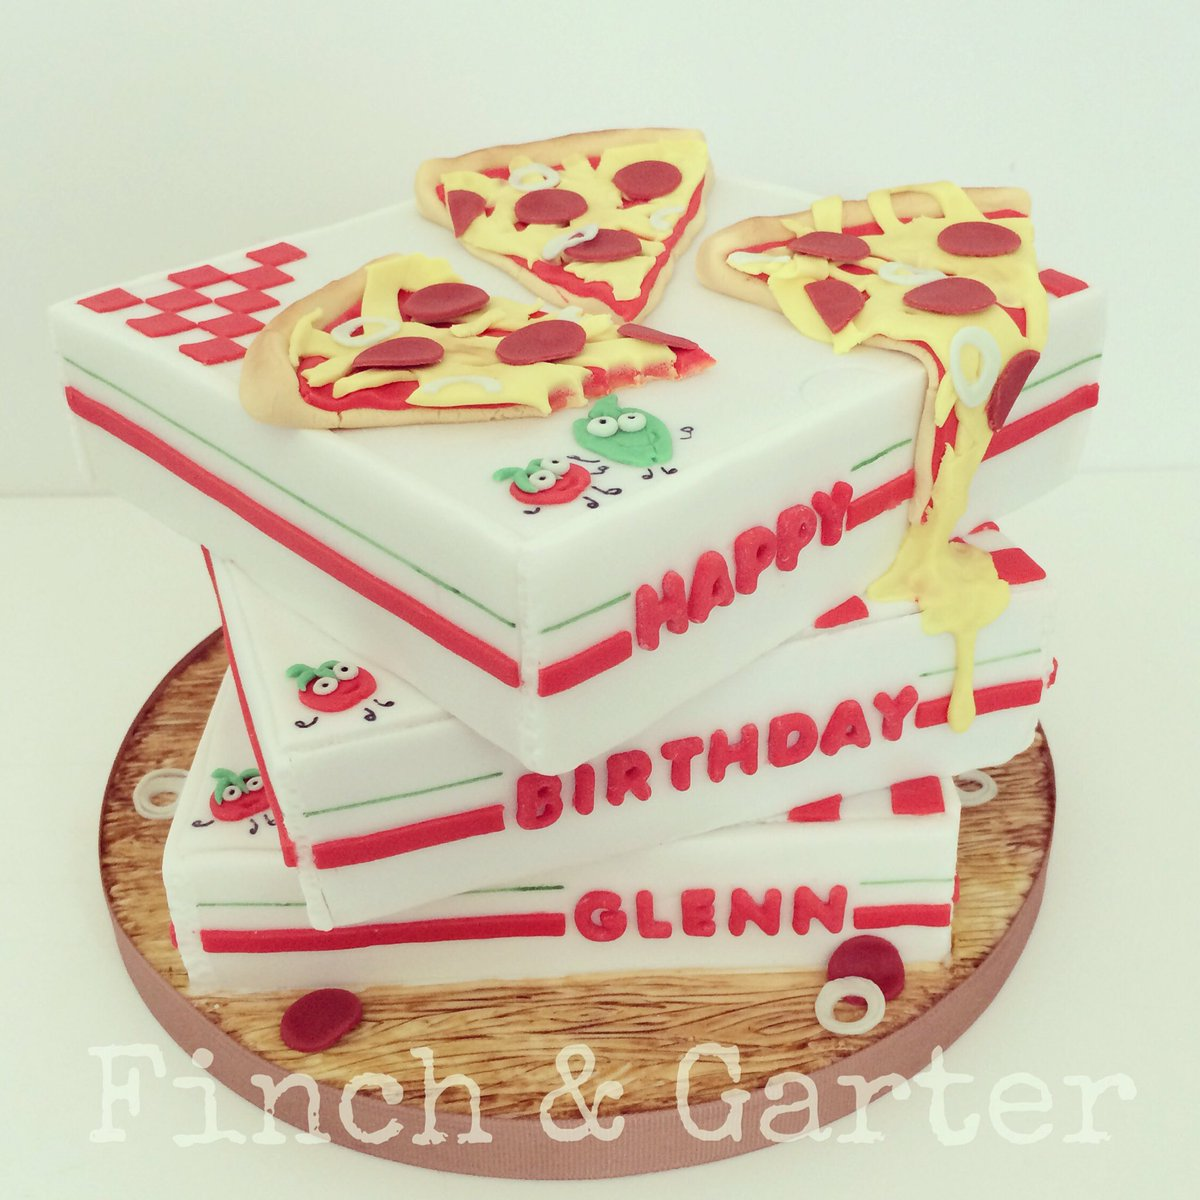 Stupendous Finch Garter Cakes On Twitter Pepperoni Pizza Birthday Funny Birthday Cards Online Alyptdamsfinfo